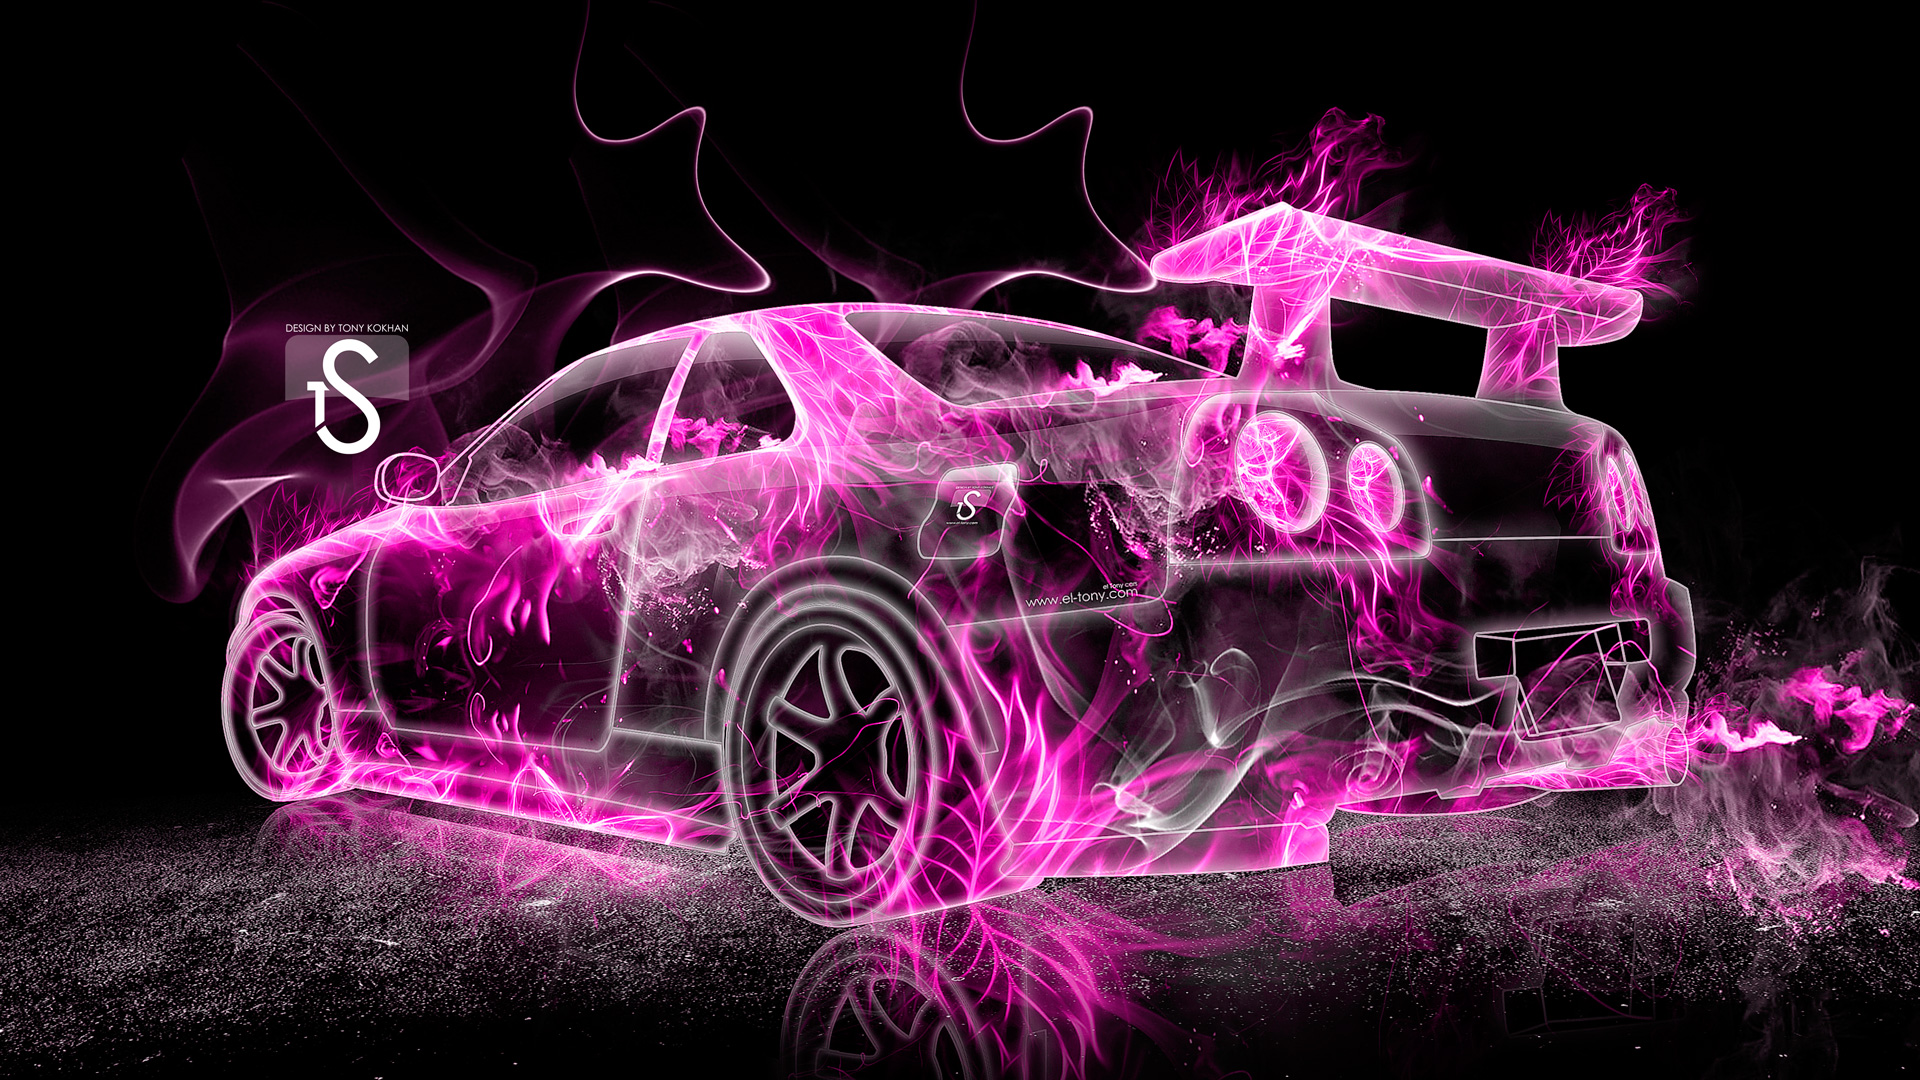 1920x1080 Nissan Skyline GTR R34 Pink Fire Abstract Car 2013 HD Wallpapers By  .